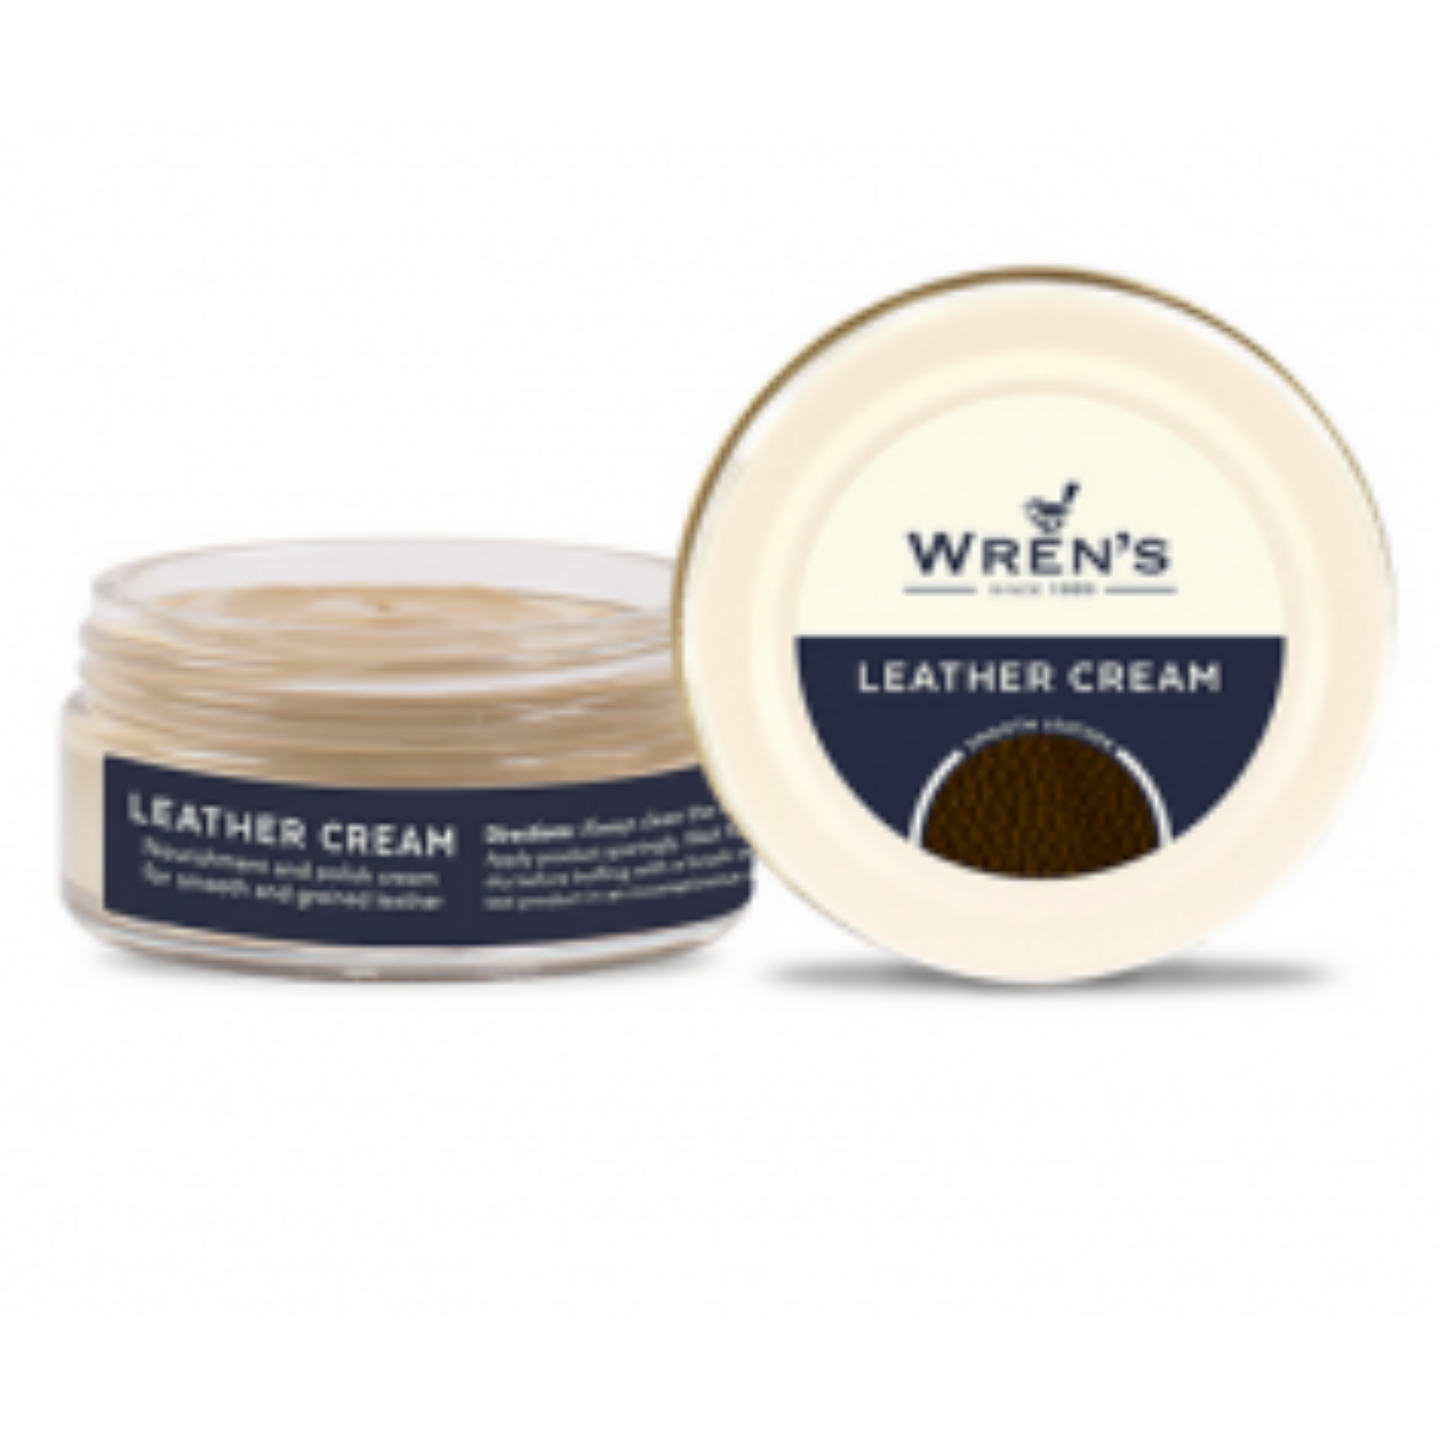 Wrens Leather Cream